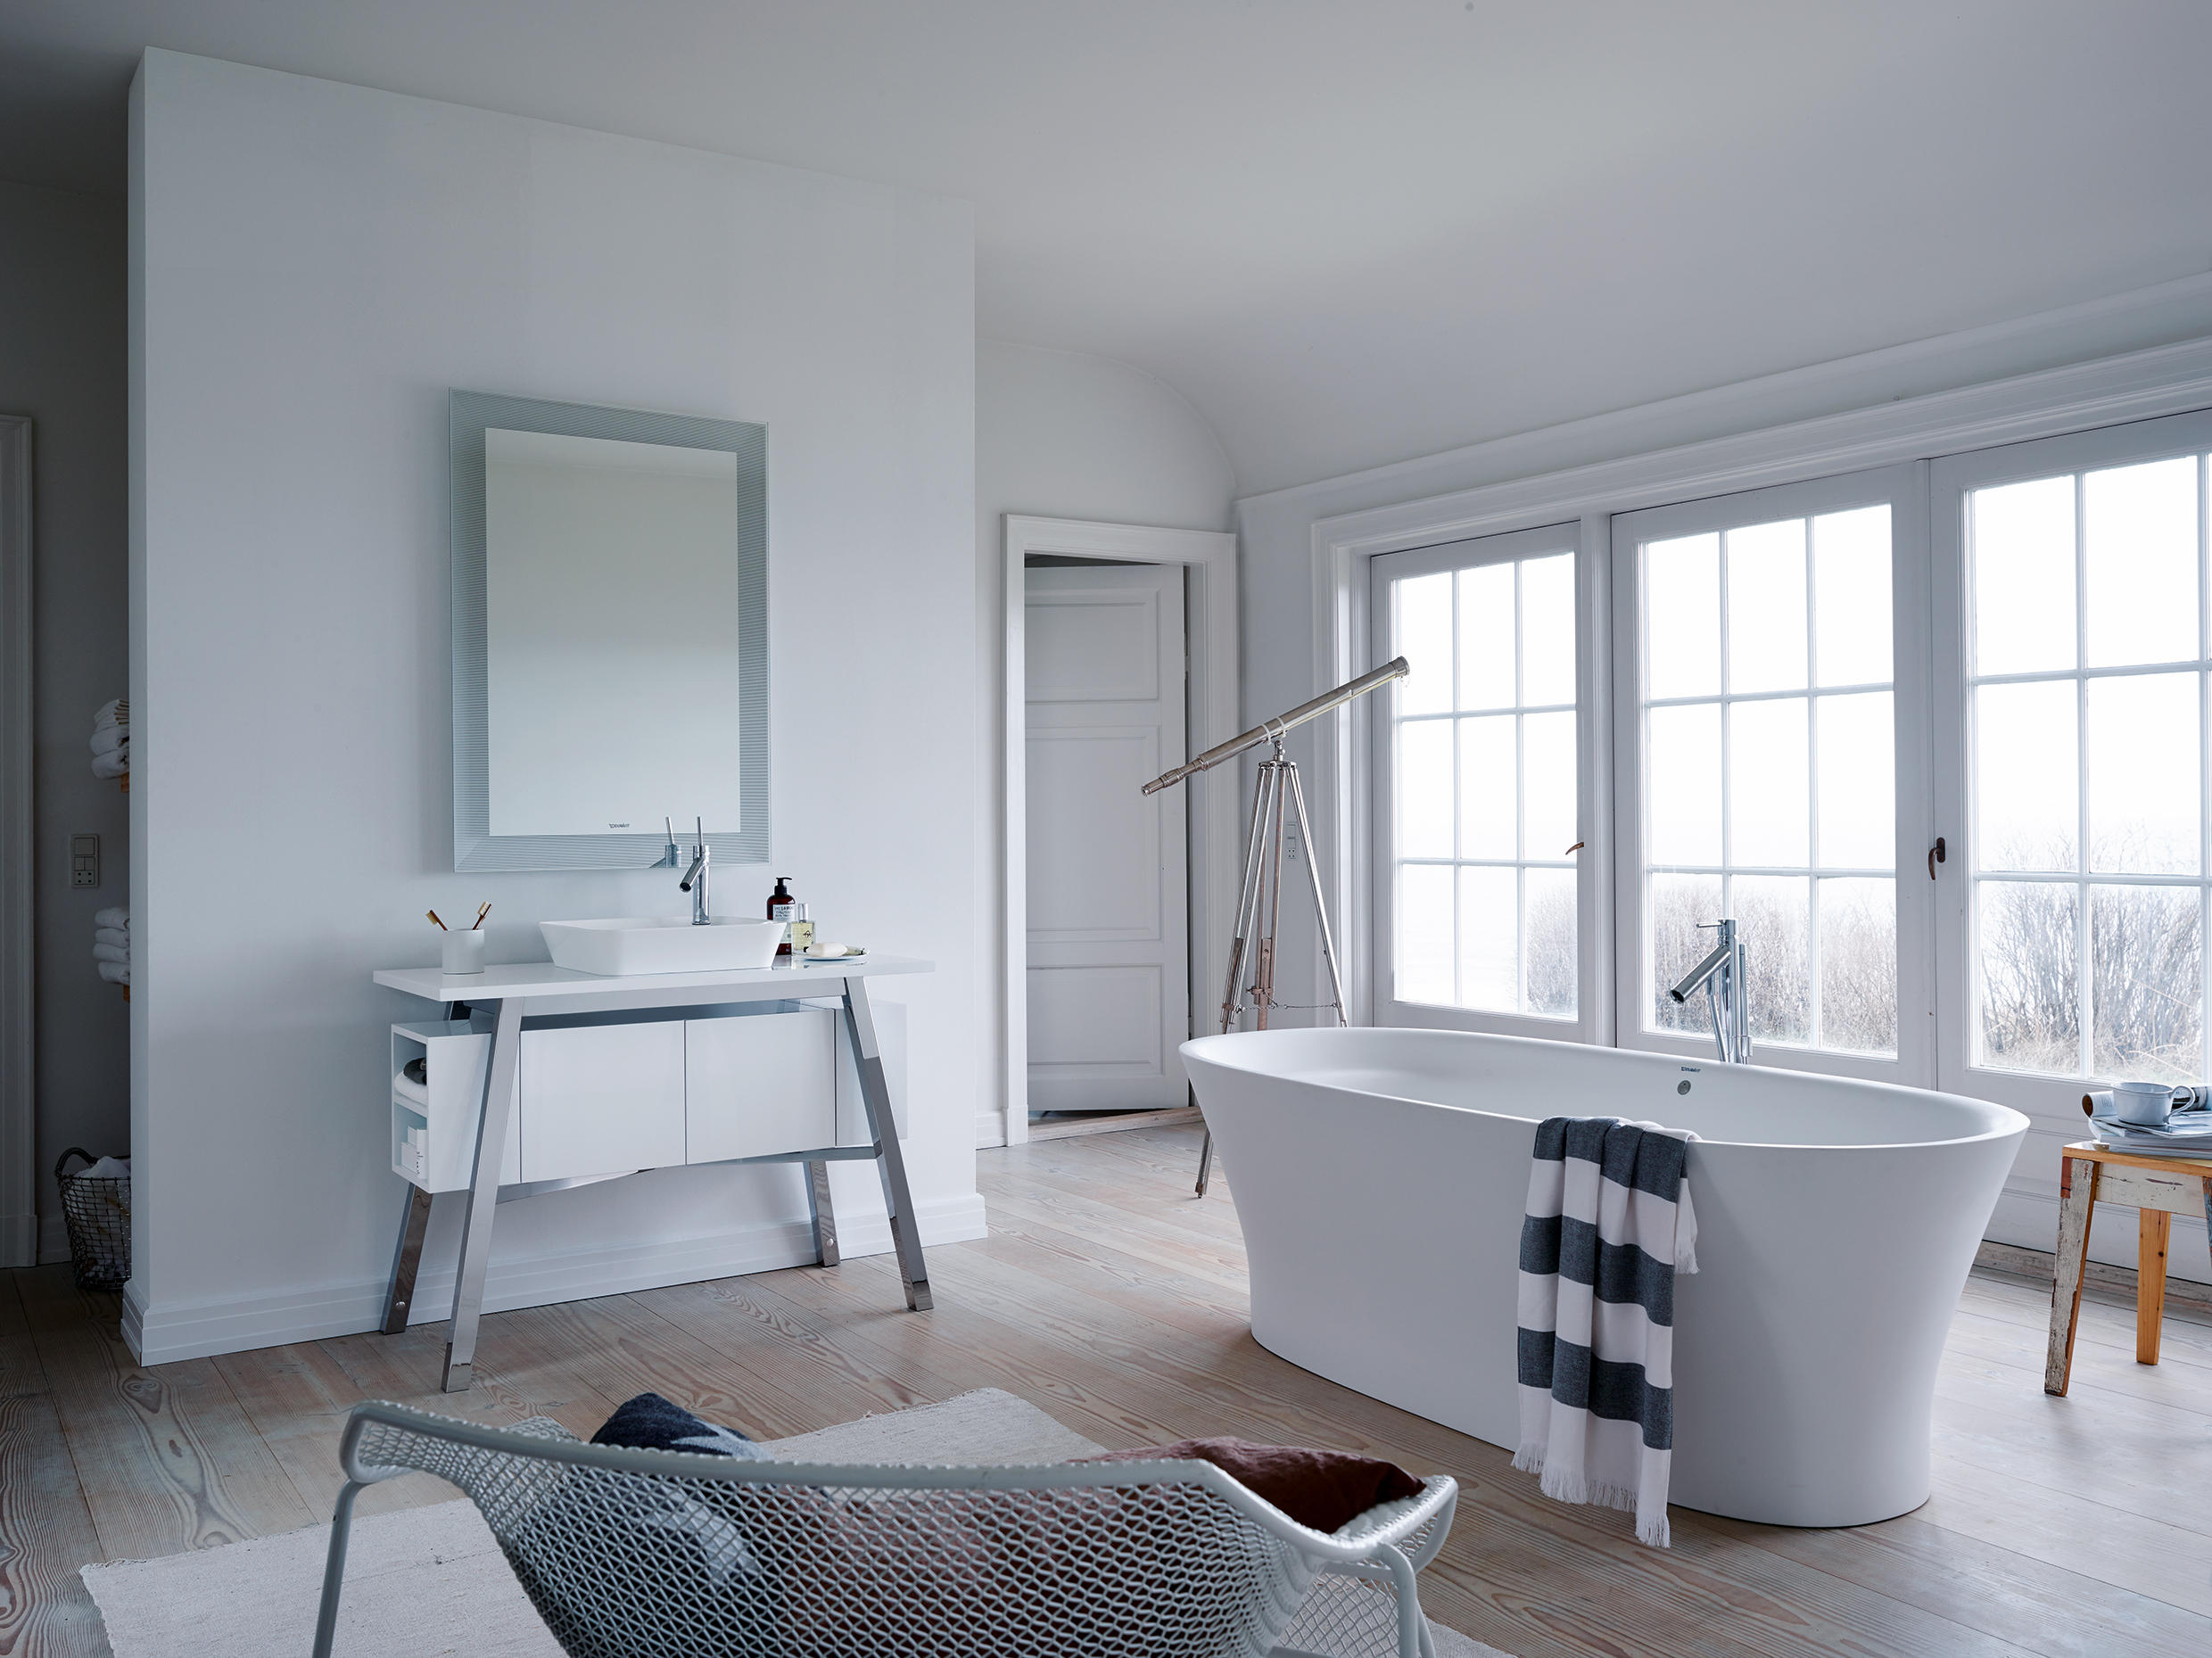 br baths from tub duravit product easyclick free en architonic standing by